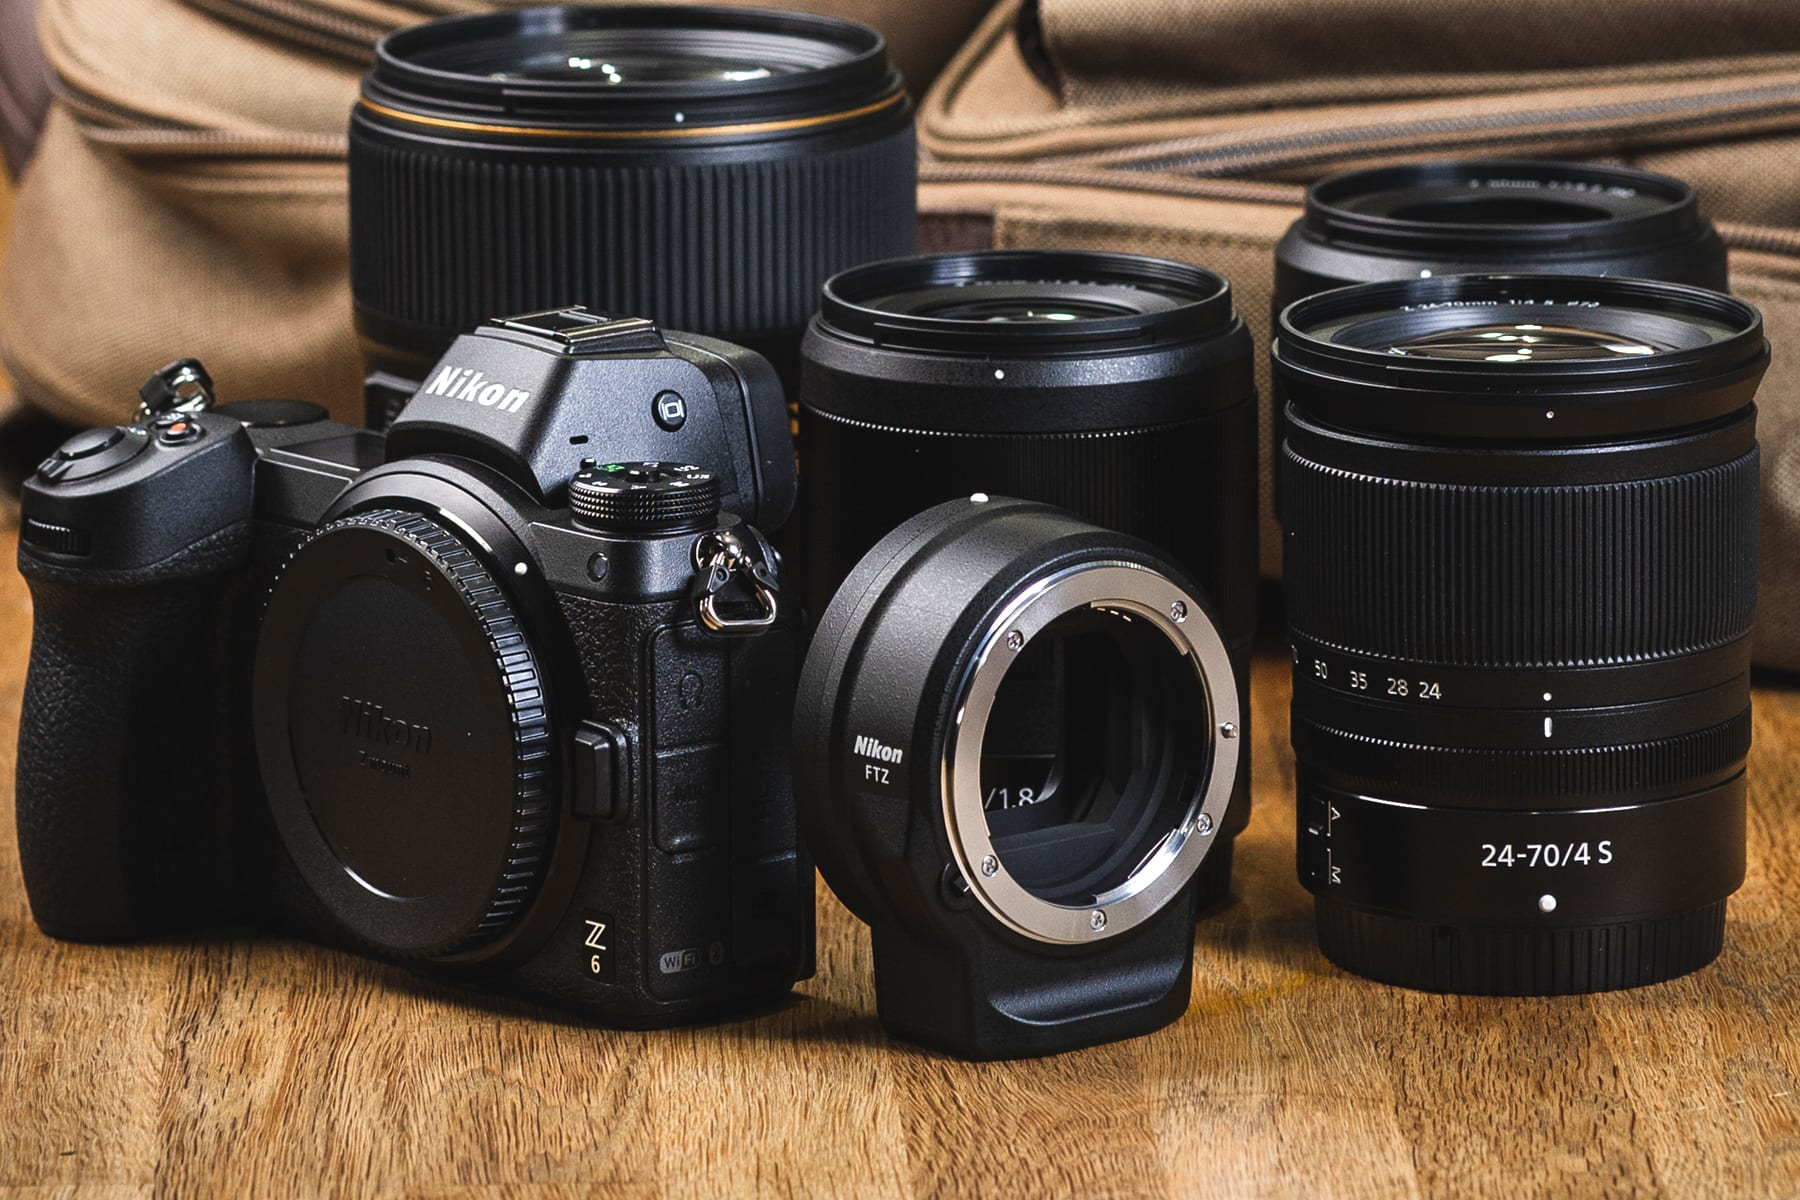 fab513dabec8 How to pick a lens for your mirrorless camera in 2019